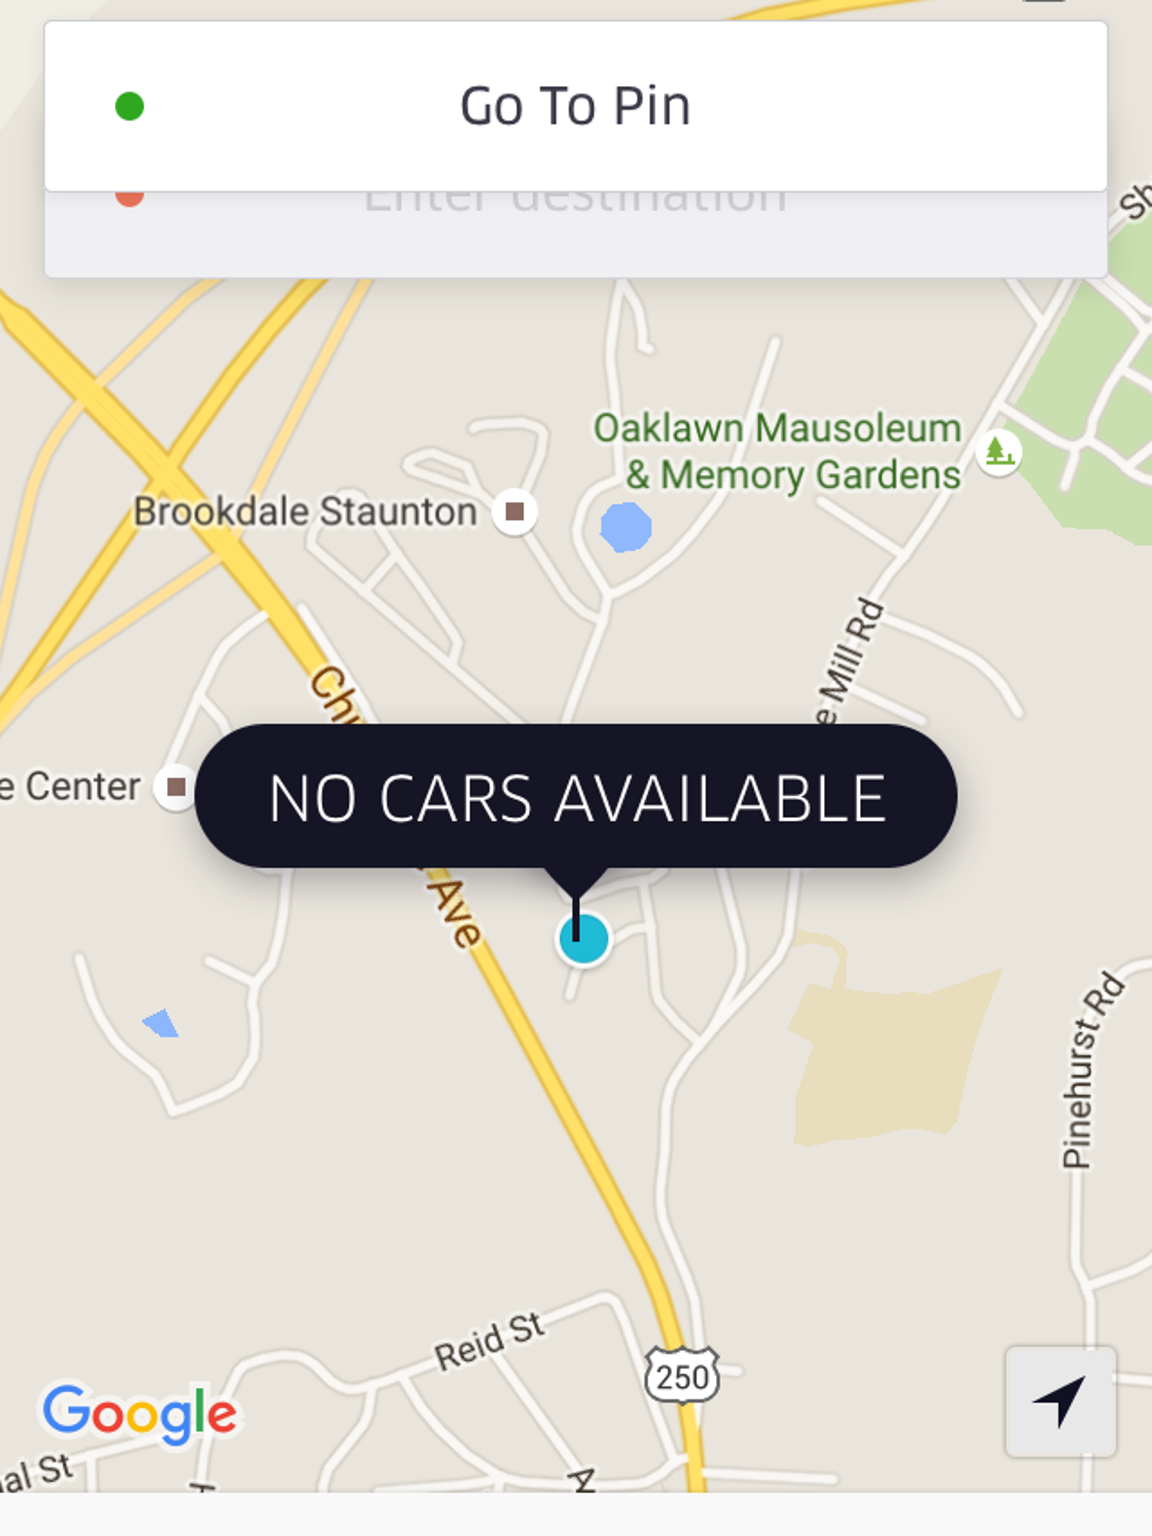 Opening the Uber app may seem useless in the Valley,